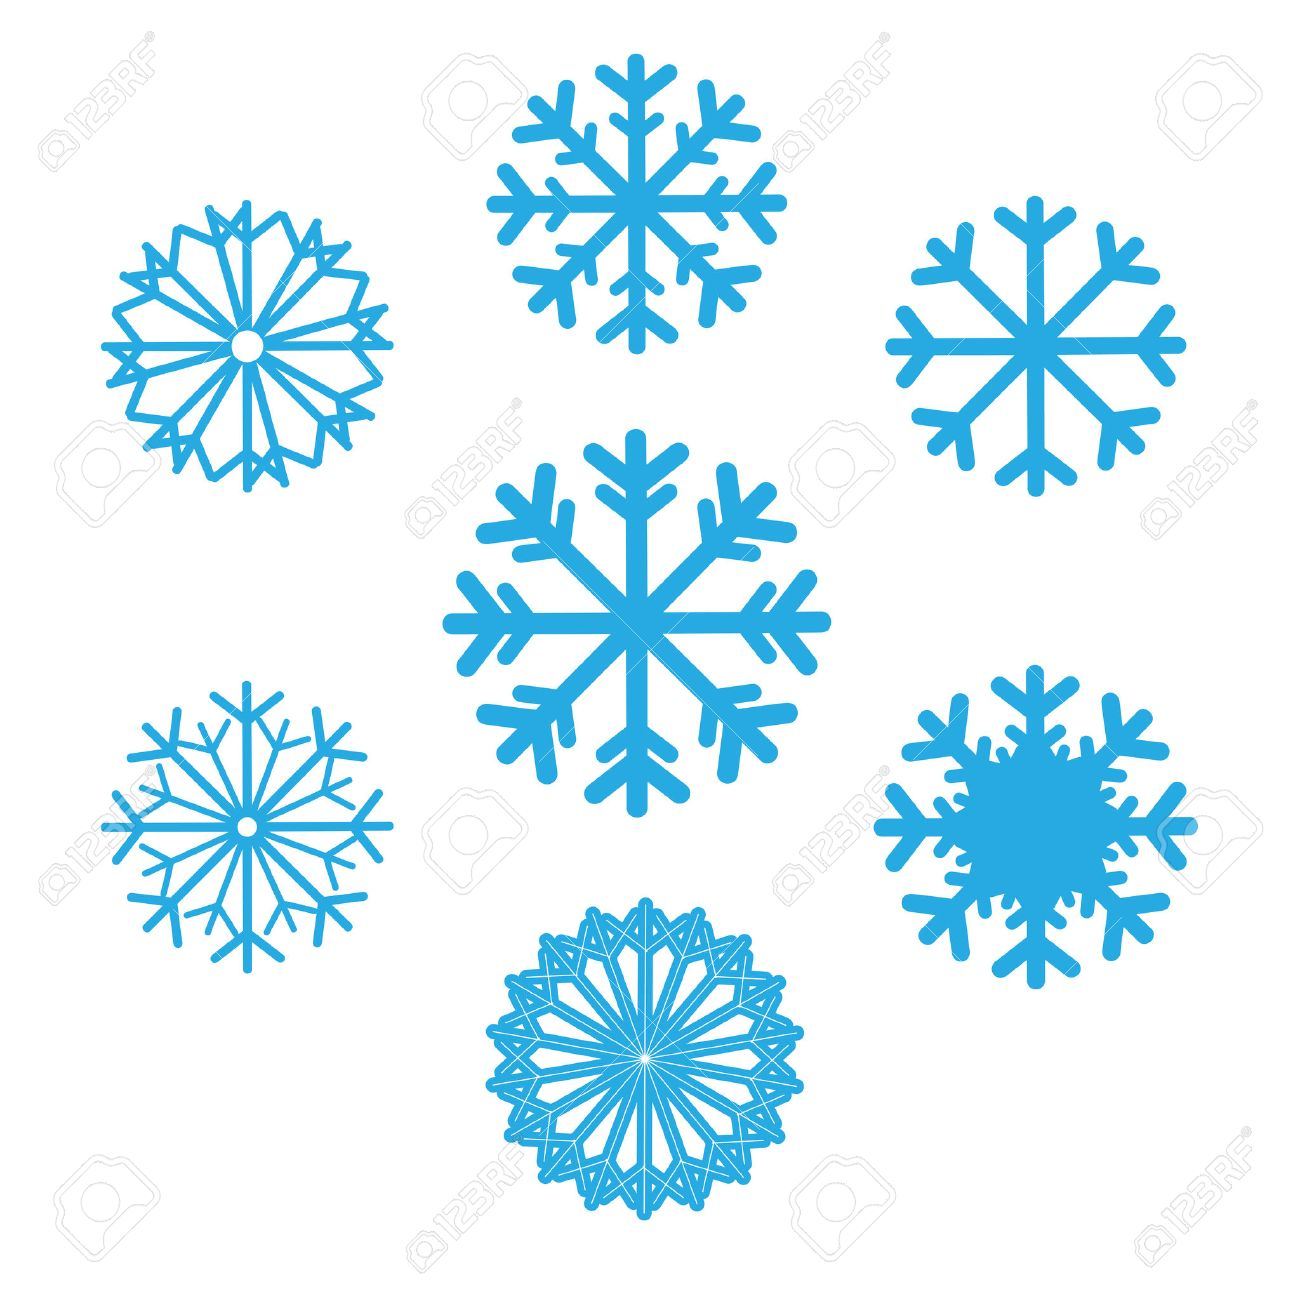 set of snowflakes vector icons background for winter and christmas theme set snowflakes flat